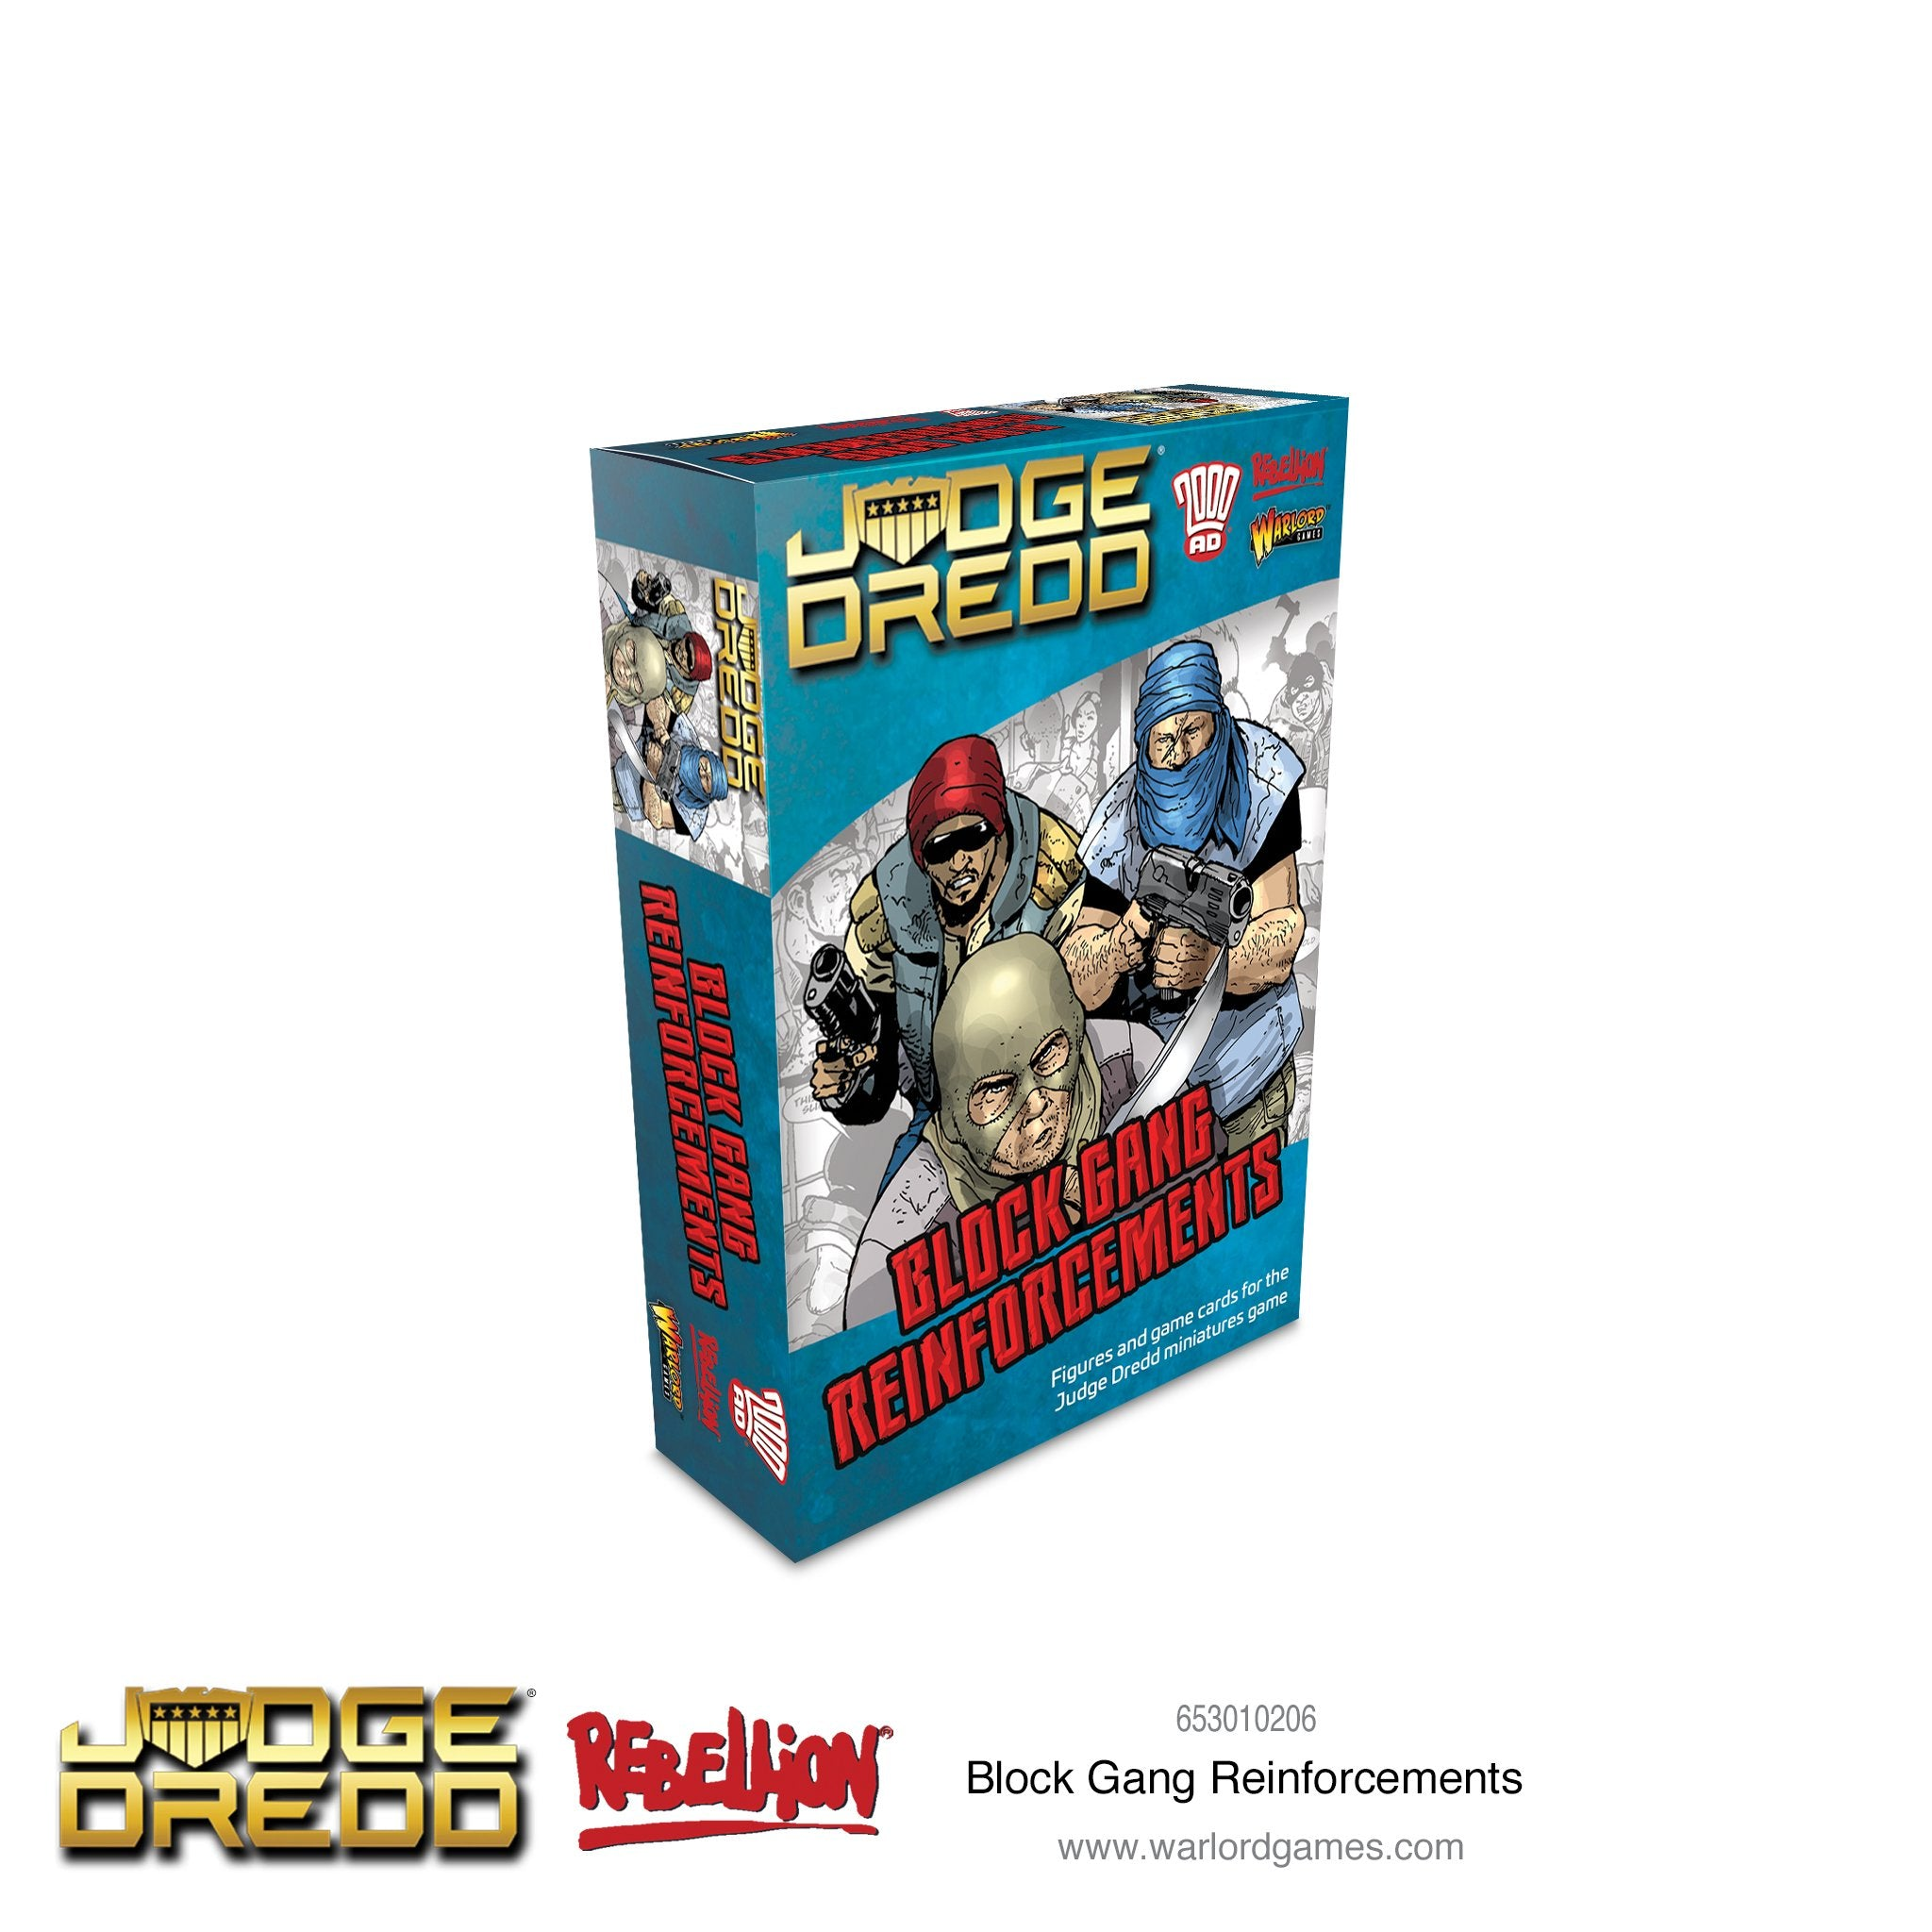 Dredd: Block Gang reinforcements